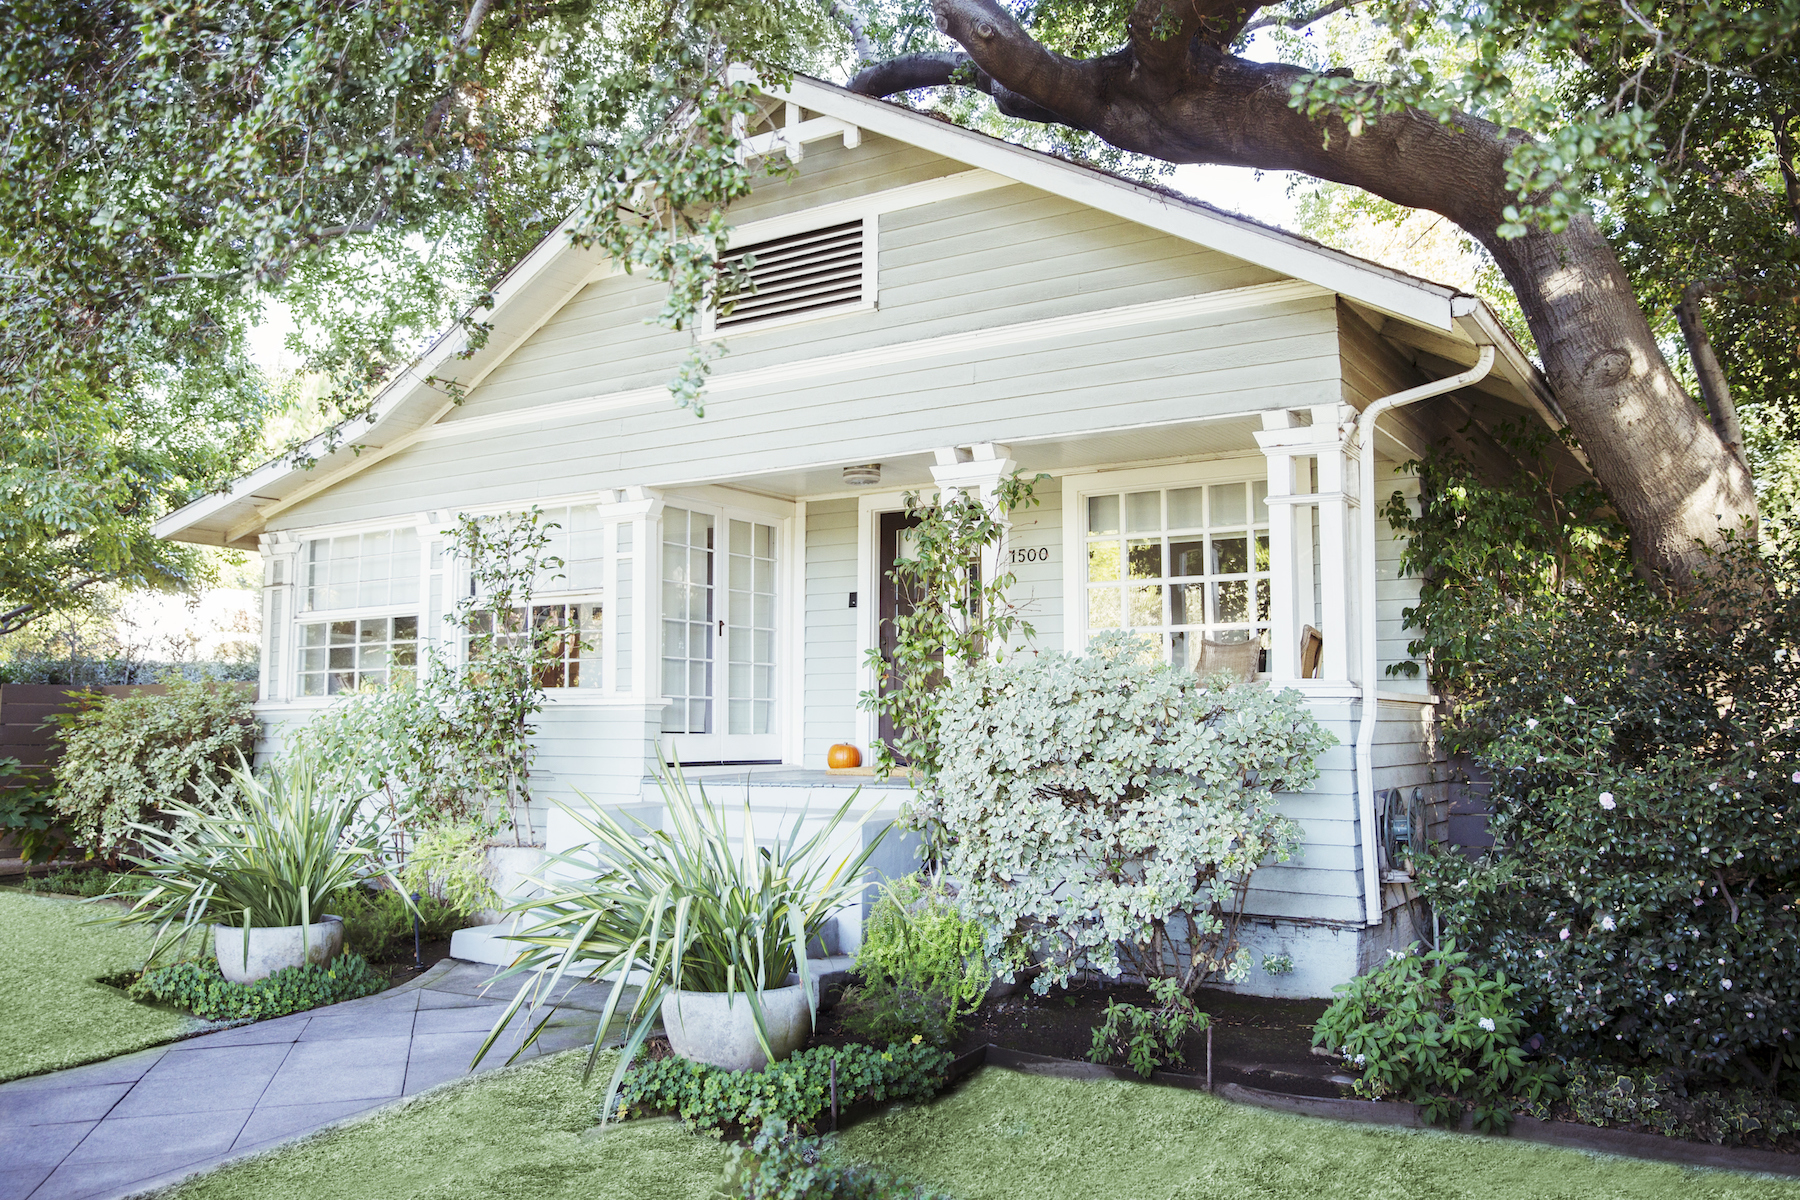 Beautiful Front Porch with plants and flowers